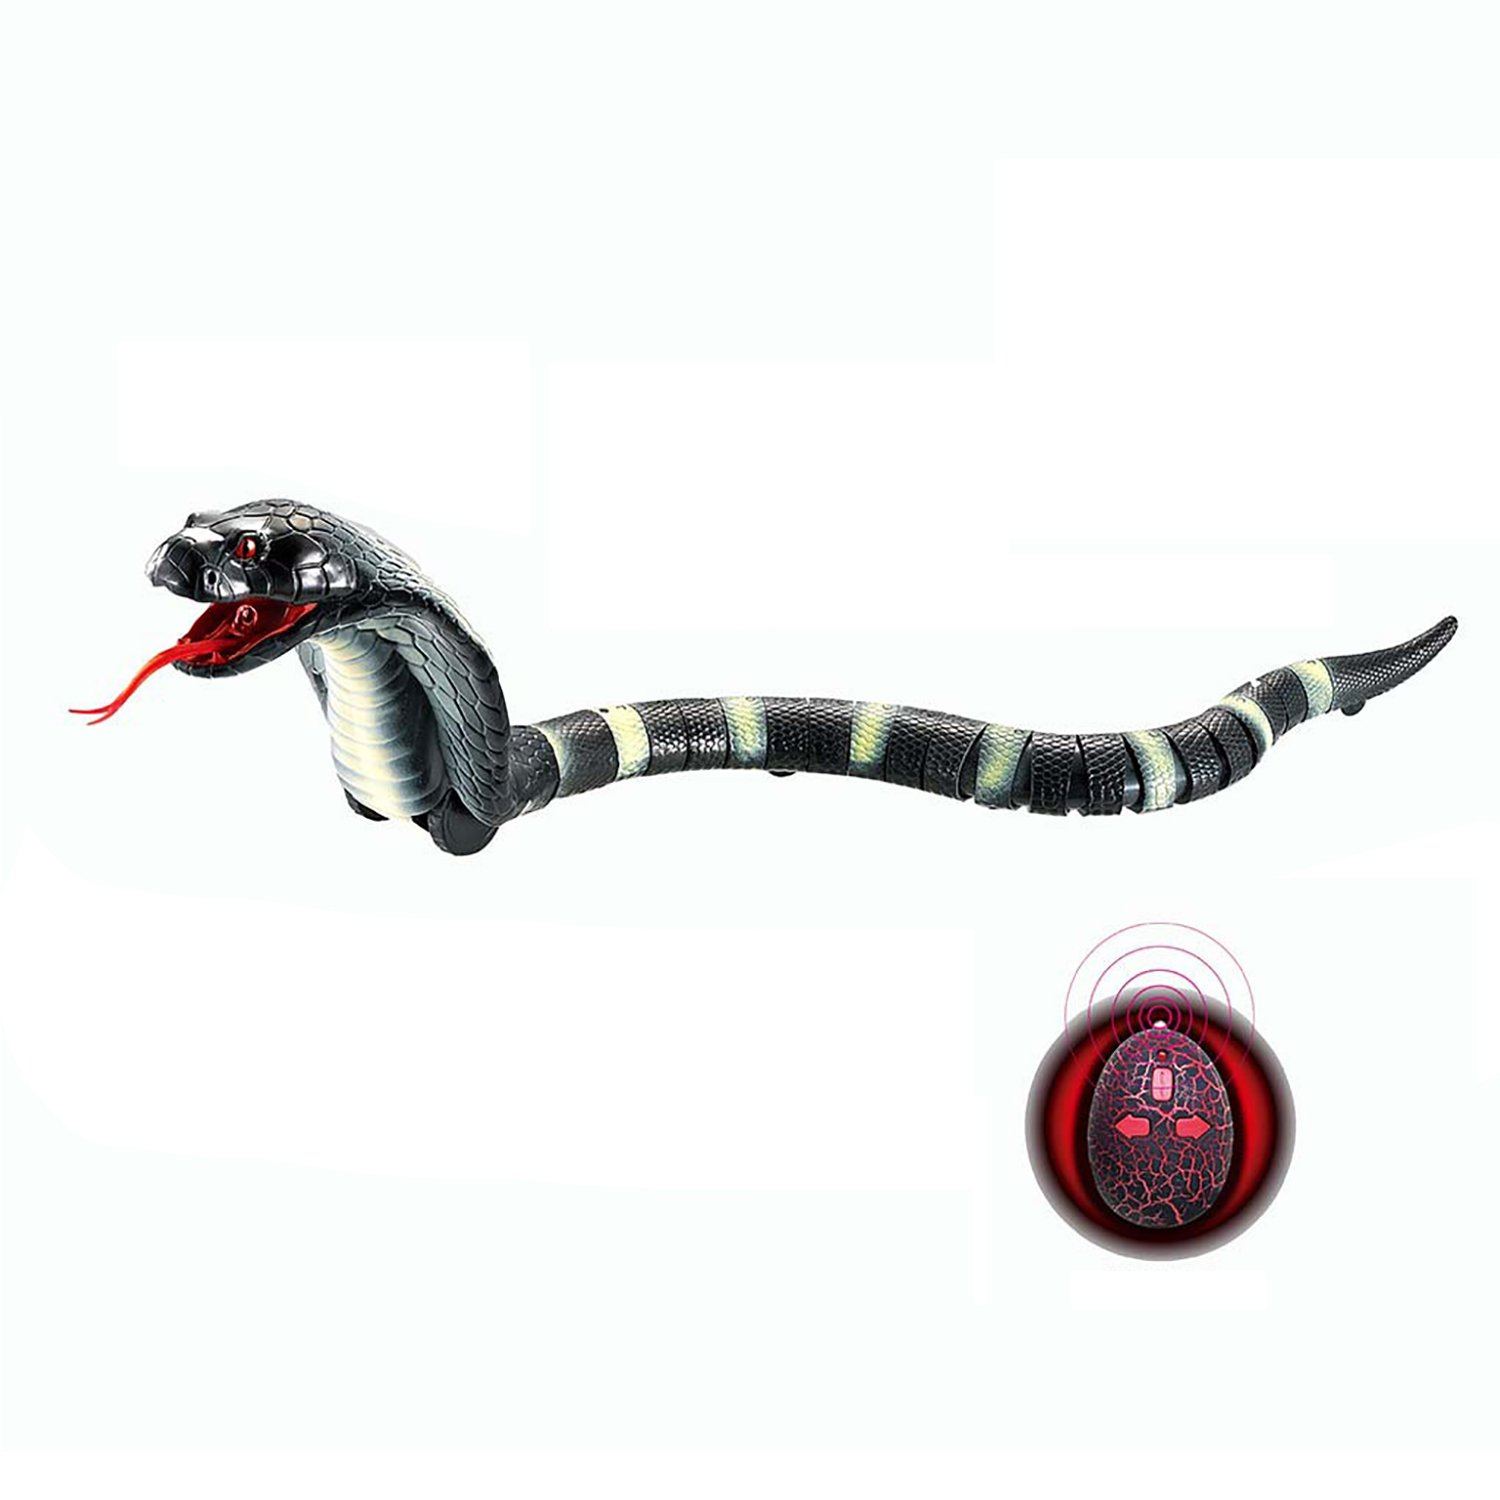 Upgraded Remote Control Cobra Snake 17'' Long Rechargeable Simulation RC Snake Toy for Kids Children By Rely2016 (Black)